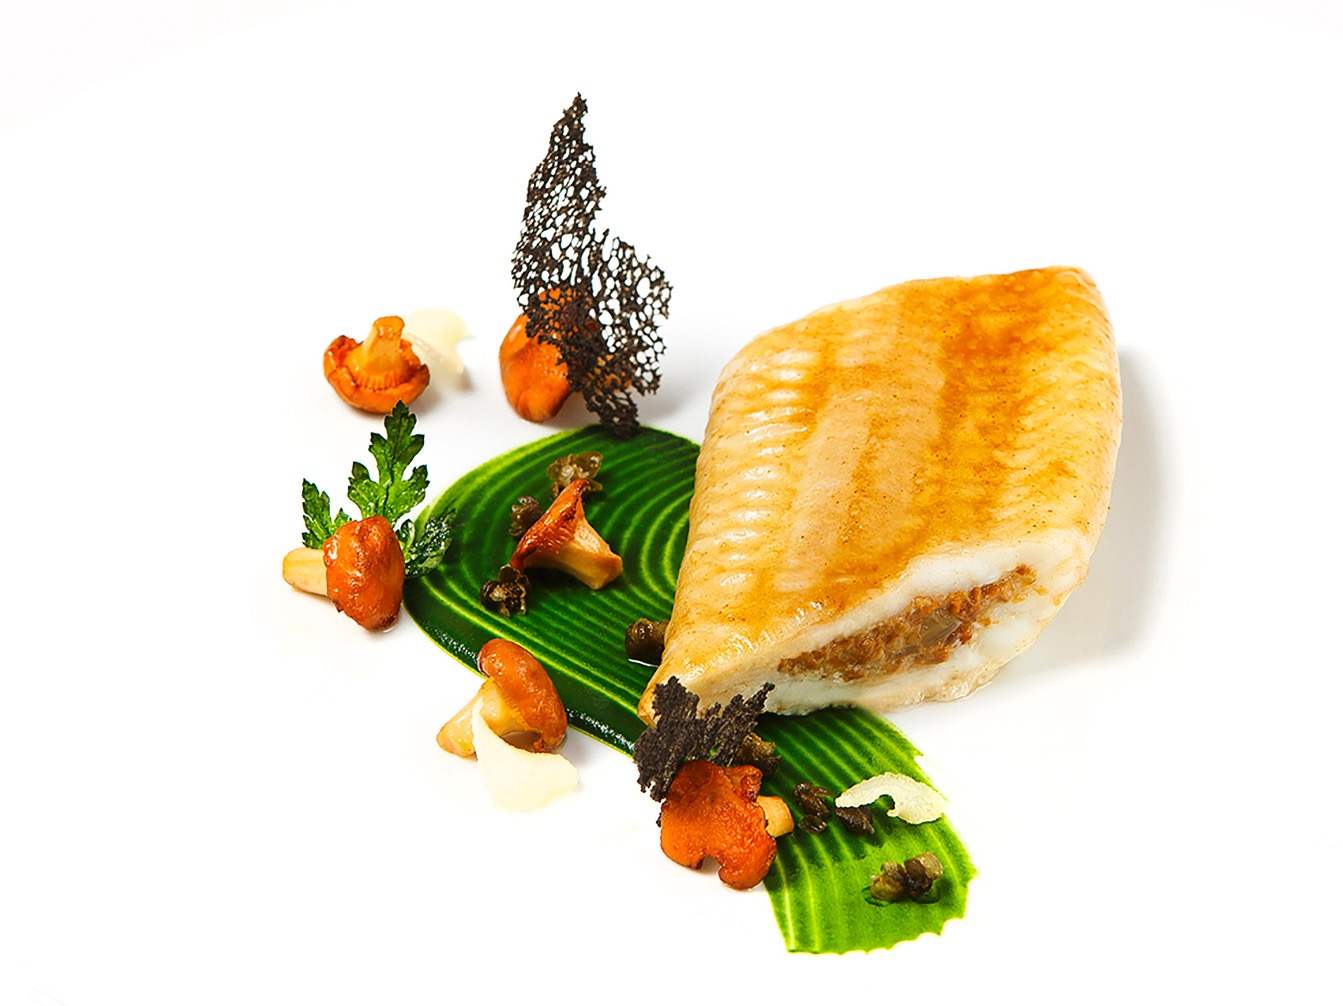 Creation culinaire Eric Frechon, chef executif Le Bristol Paris, 3 etoiles au guide Michelin, MOF, Filet de sole des sables aux girolles, ©Alban Couturier